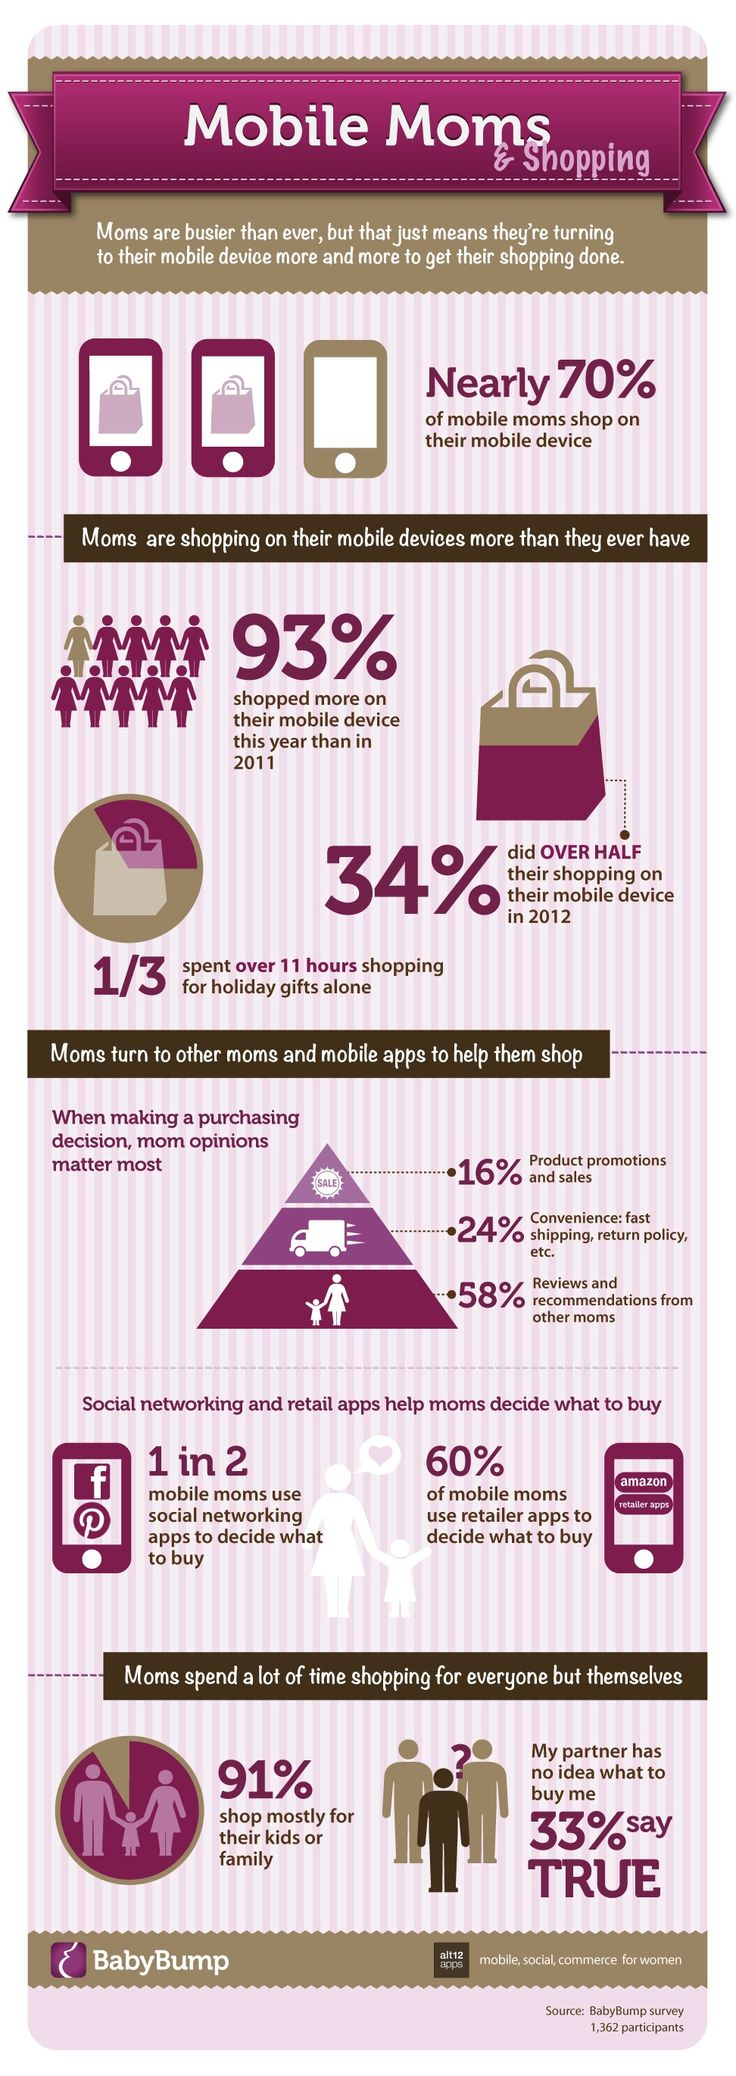 An infographic from pregnancy app BabyBump shows that 93% of moms spent more time shopping on their cellphone in 2012 than in 2011.